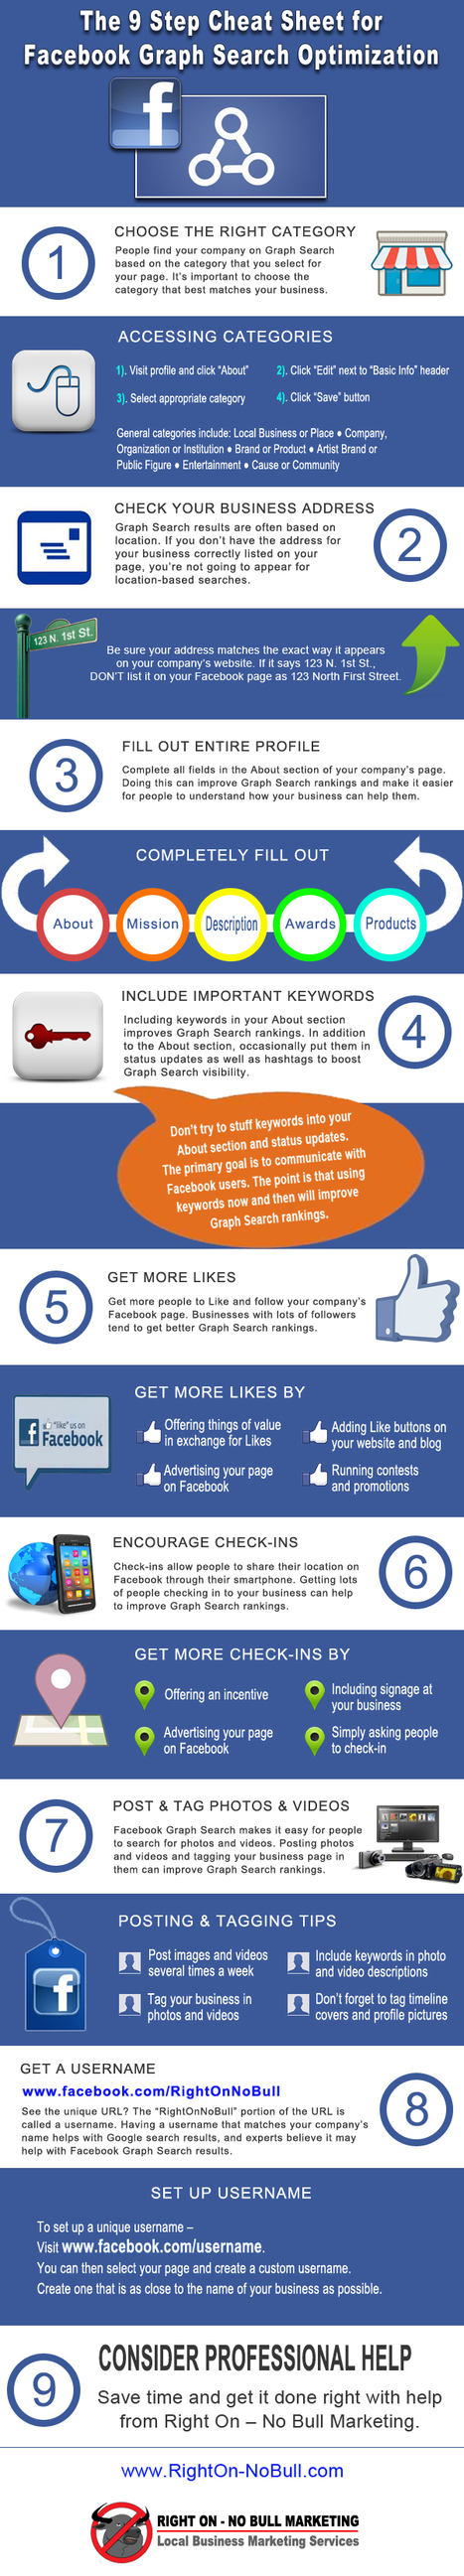 9 Steps for Facebook Graph Search Optimization [INFOGRAPHIC] | Social Media Feed | Scoop.it